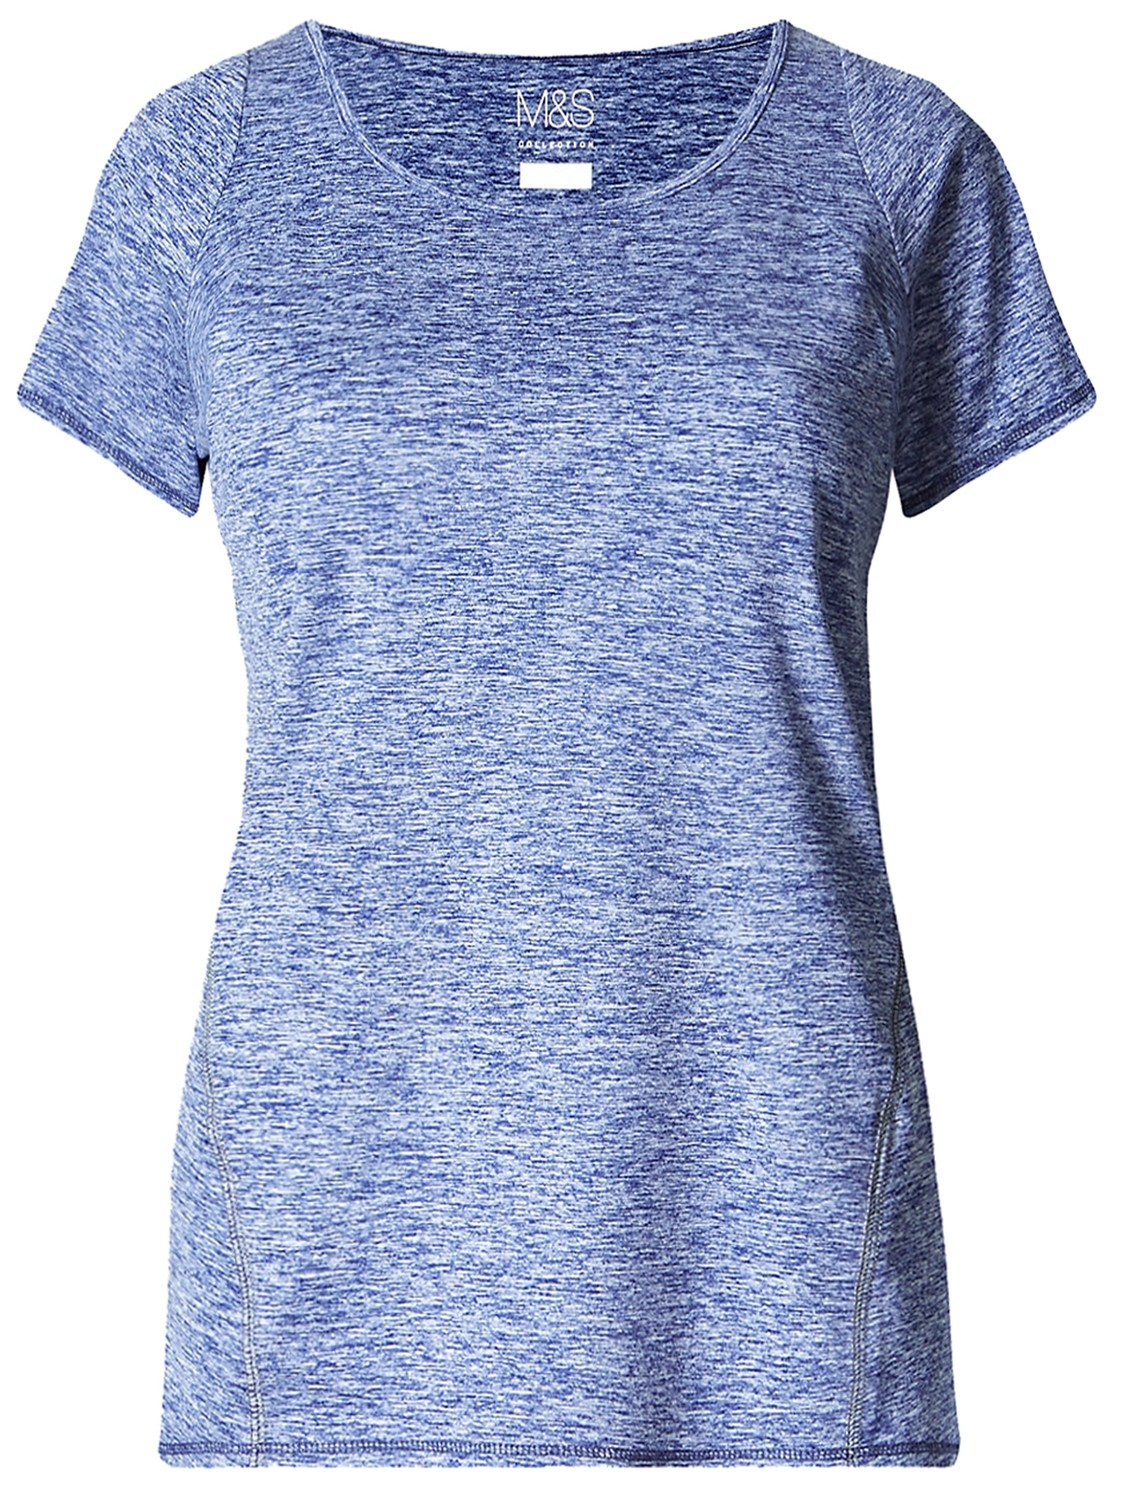 DARK-BLUE Performance Marl Tee Exercise Shirt